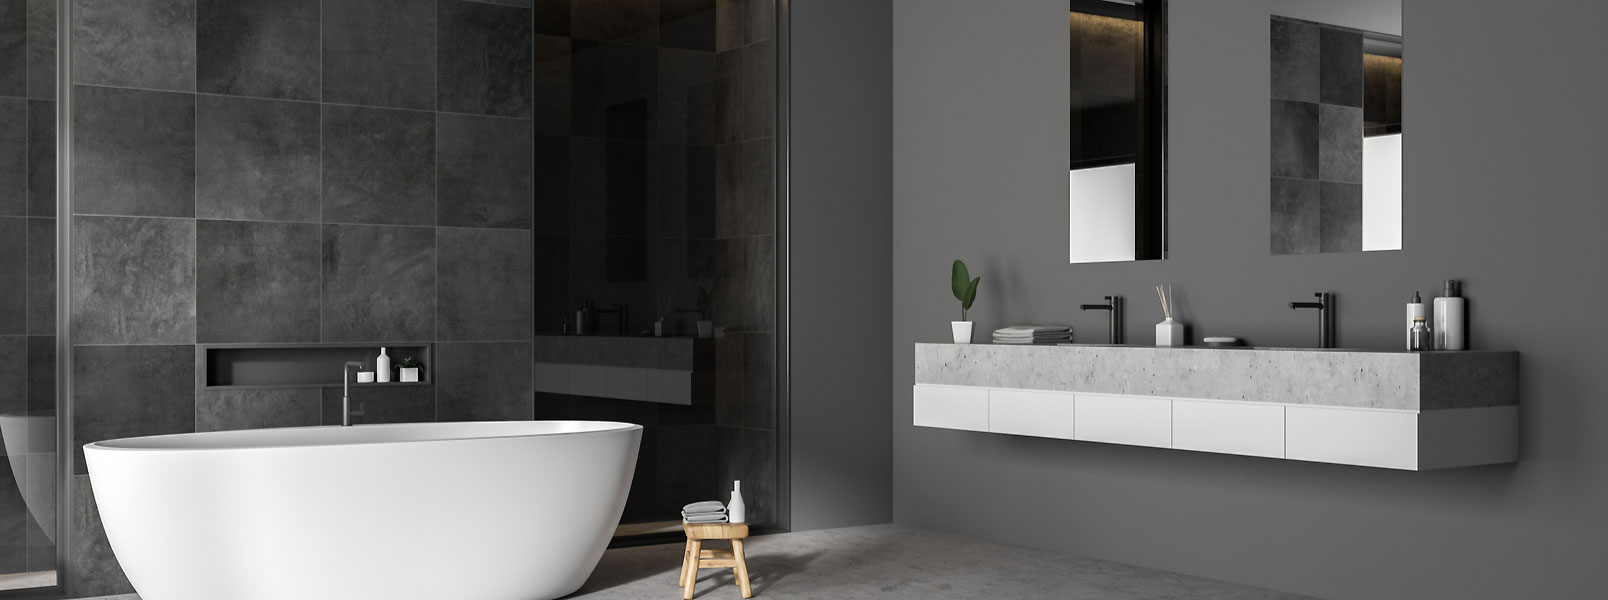 Best Toilets 2020.10 Bathroom Trends To Look Out For As 2020 Approaches